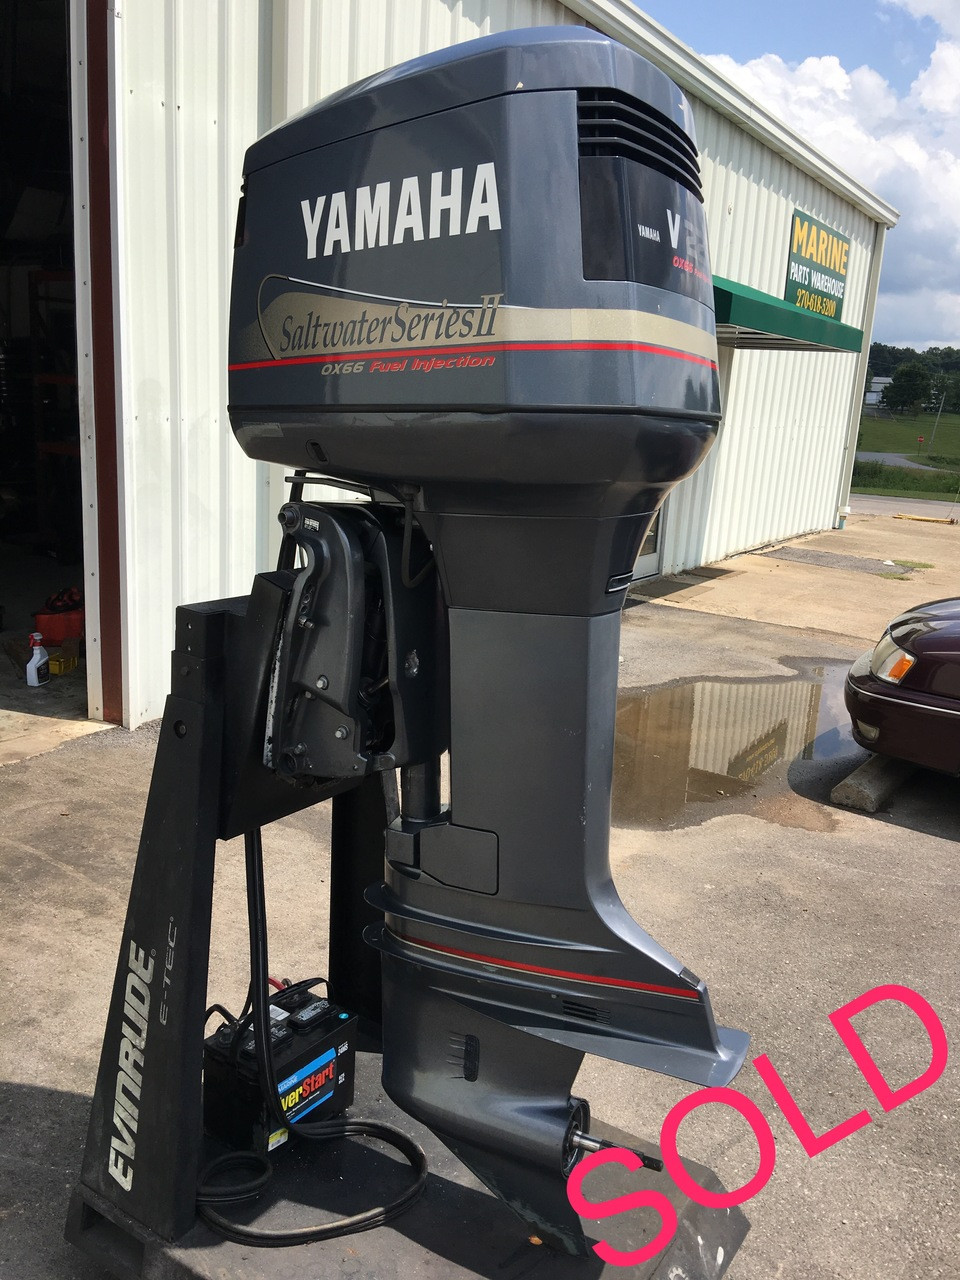 medium resolution of 2001 yamaha v225 saltwater series ii ox66 fuel injection 3 1l v6 2 yamaha ox66 outboard wiring diagram